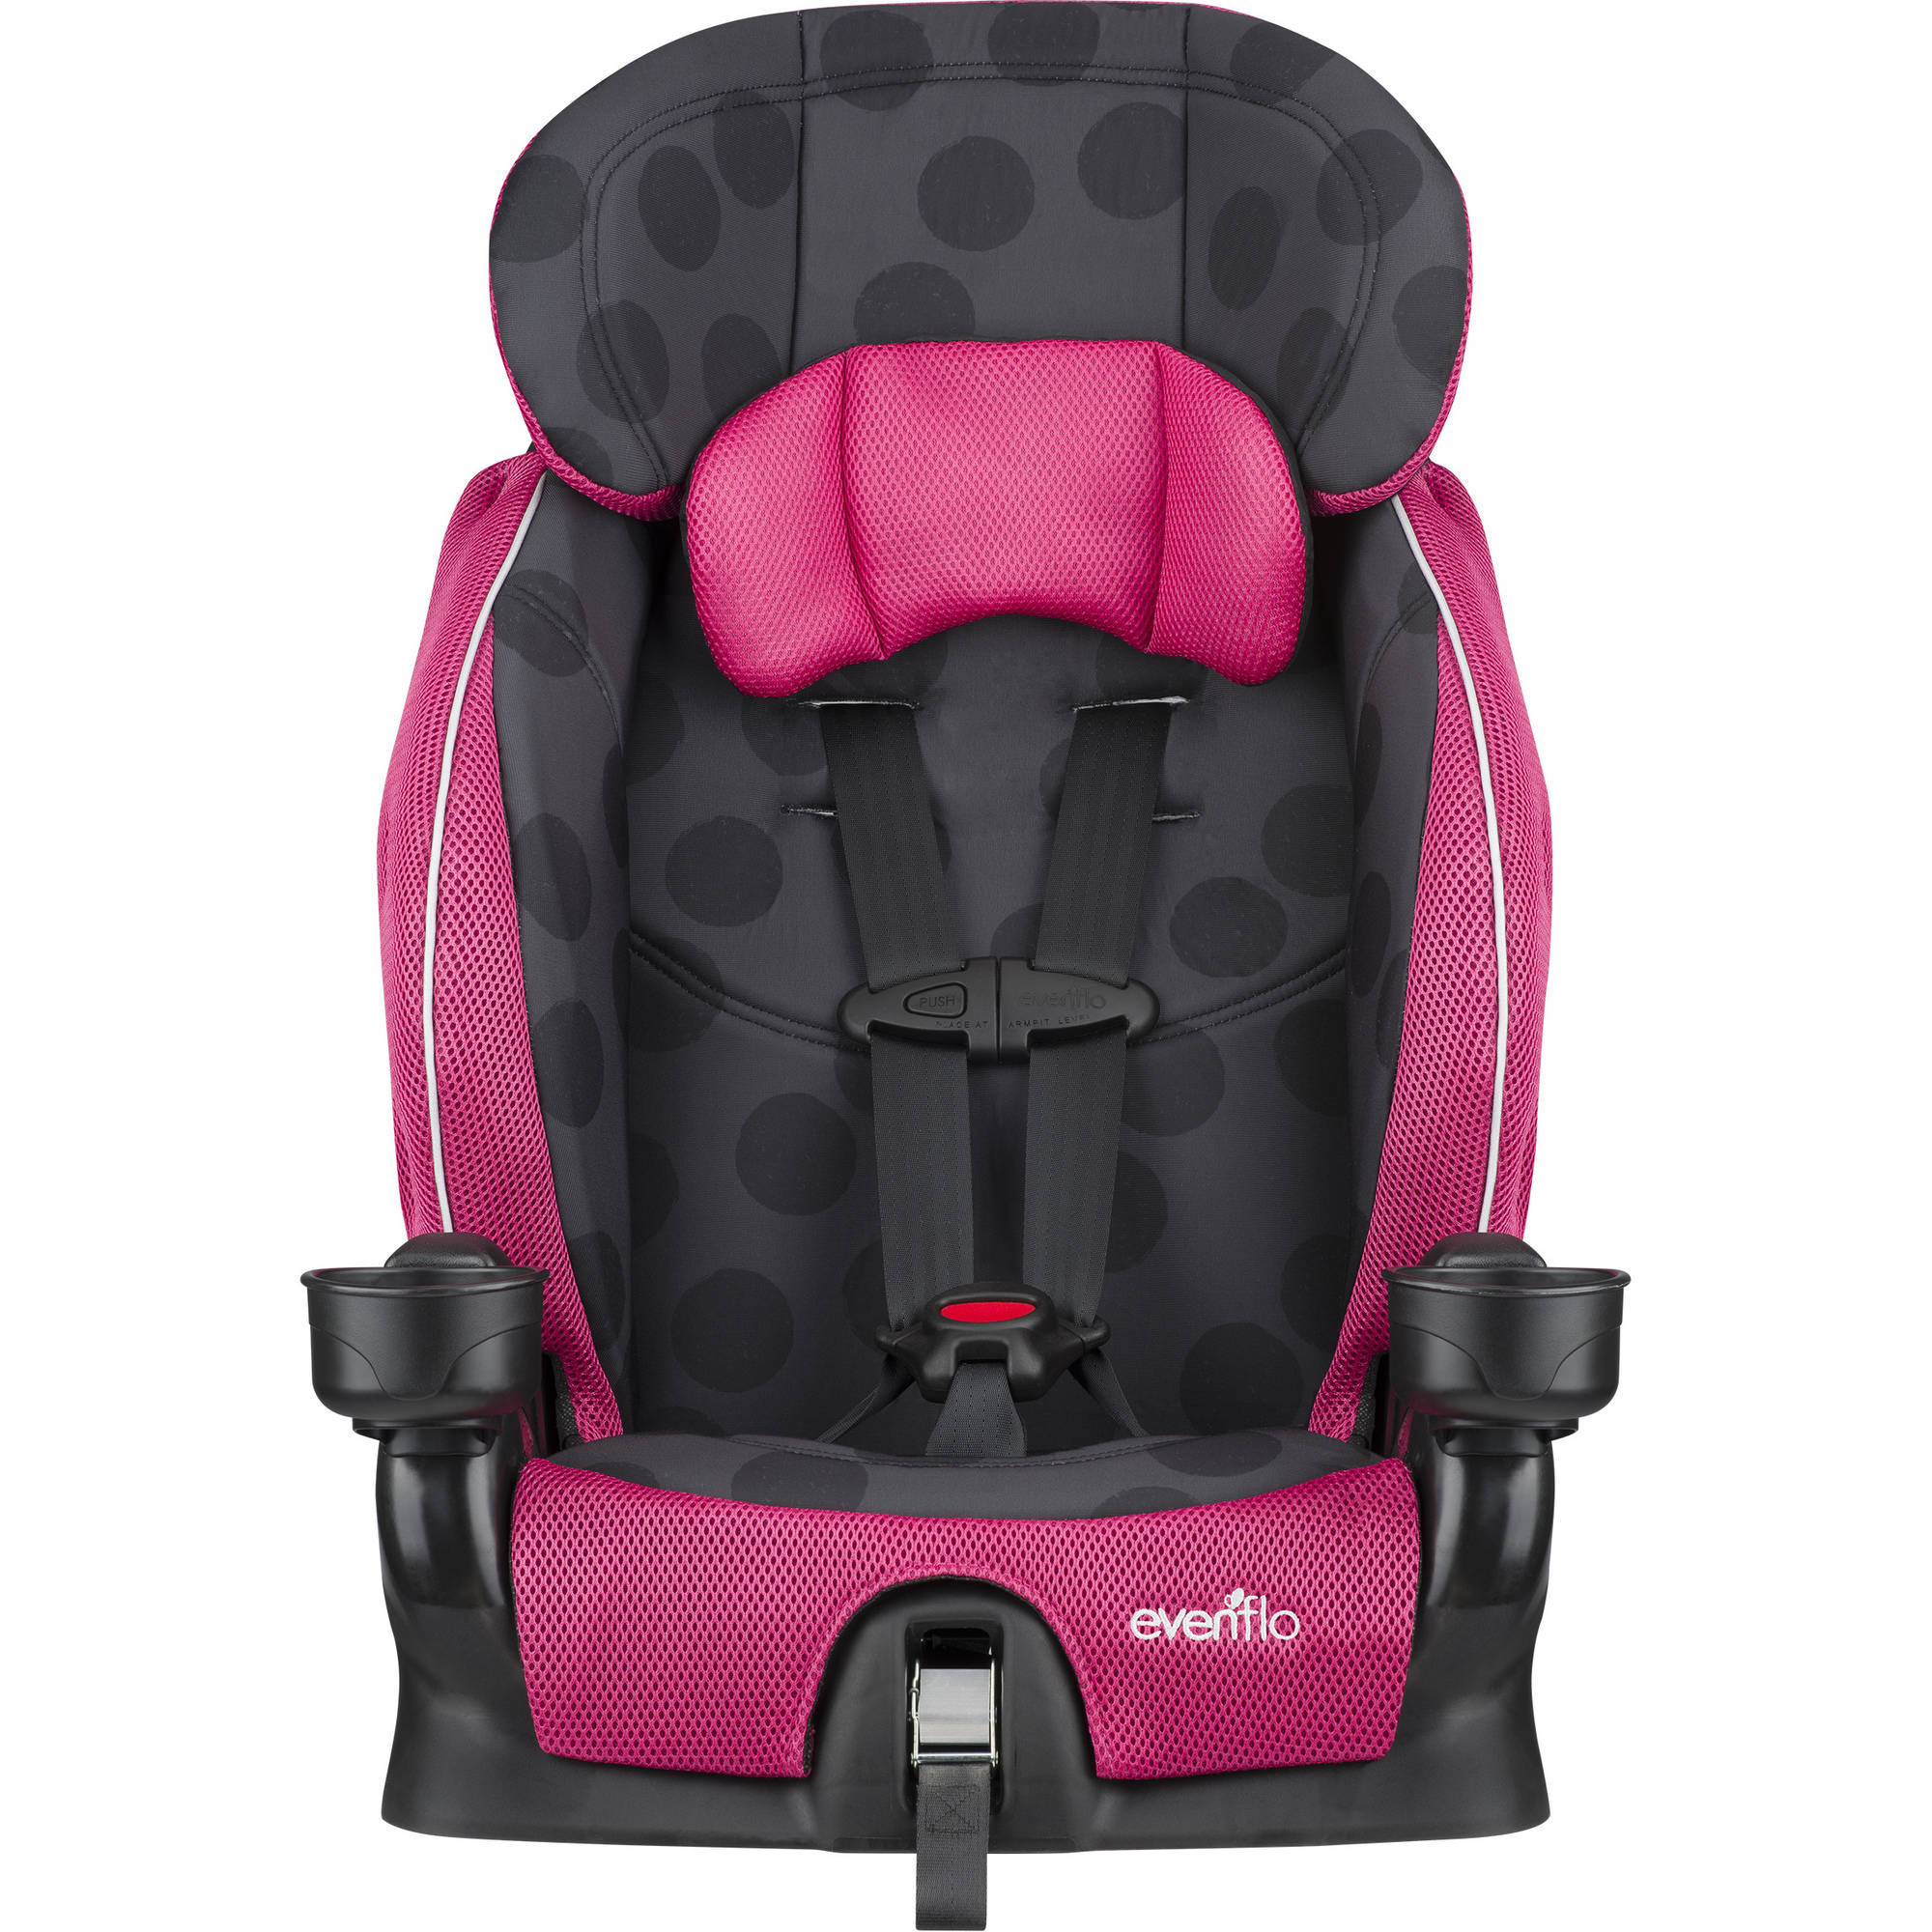 evenflo advanced chase lx harness booster seat dotty flamingo 32884187133 ebay. Black Bedroom Furniture Sets. Home Design Ideas